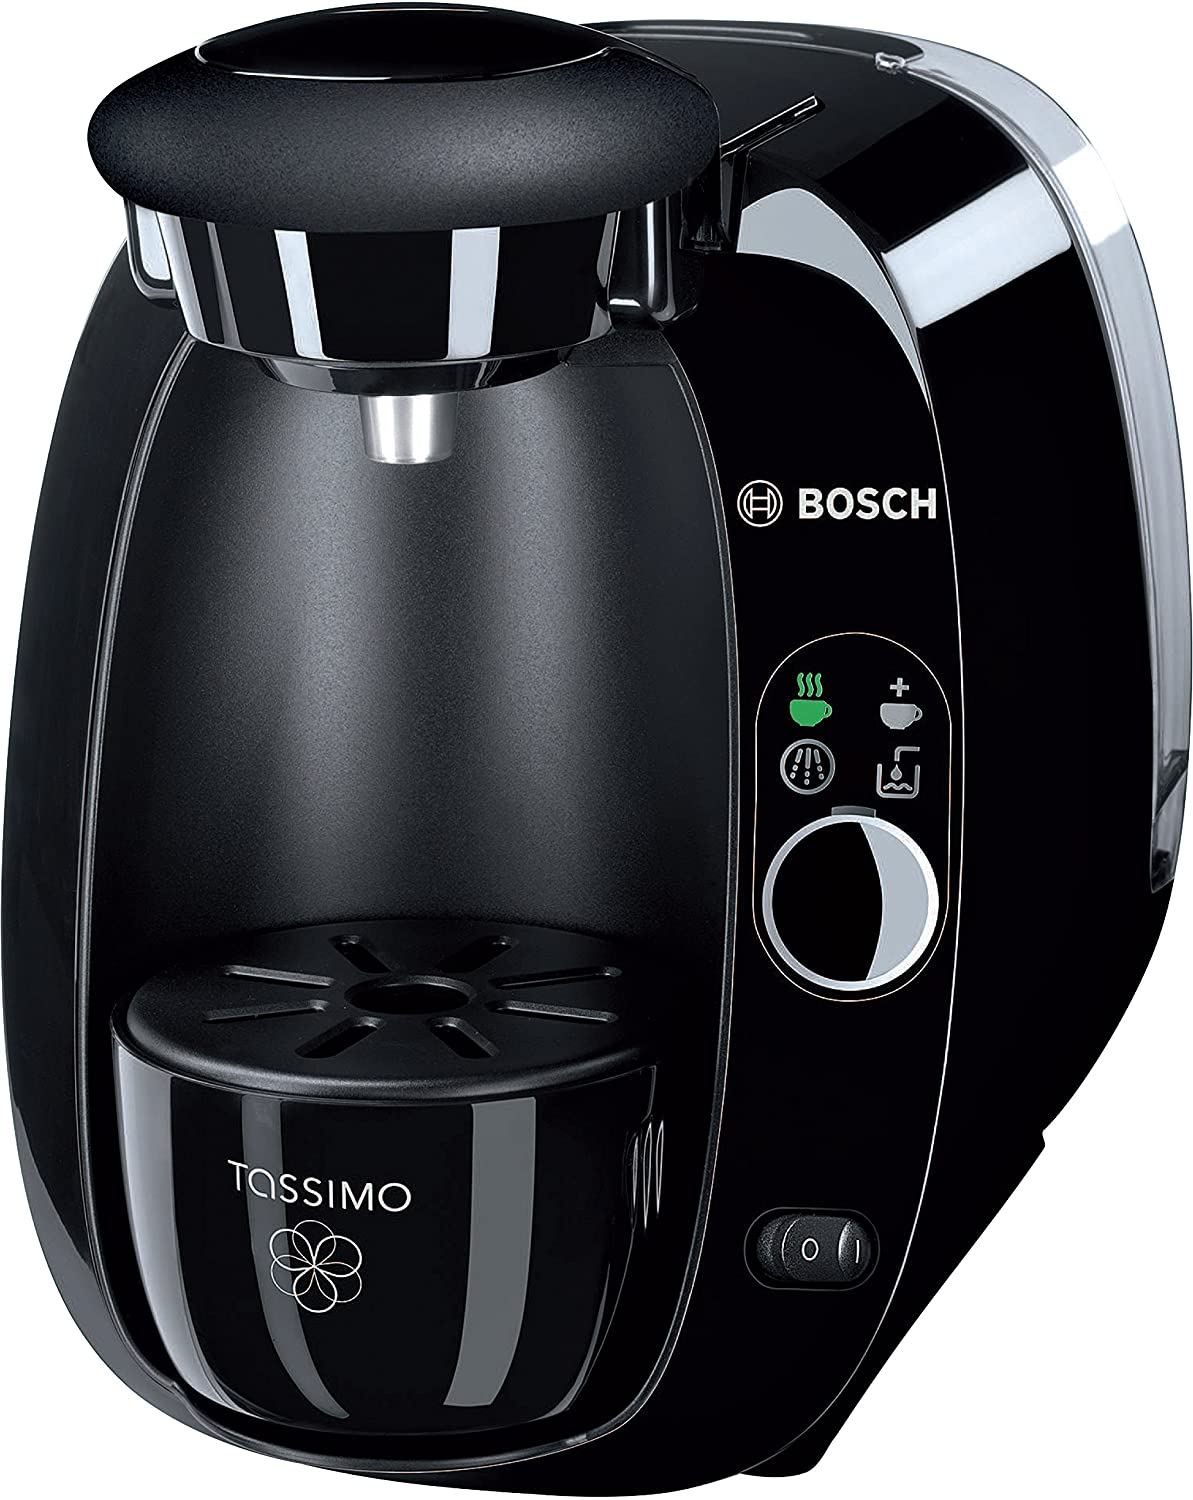 bosch tassimo t20 amia hot beverage coffee espresso maker machine tas2002gb new. Black Bedroom Furniture Sets. Home Design Ideas